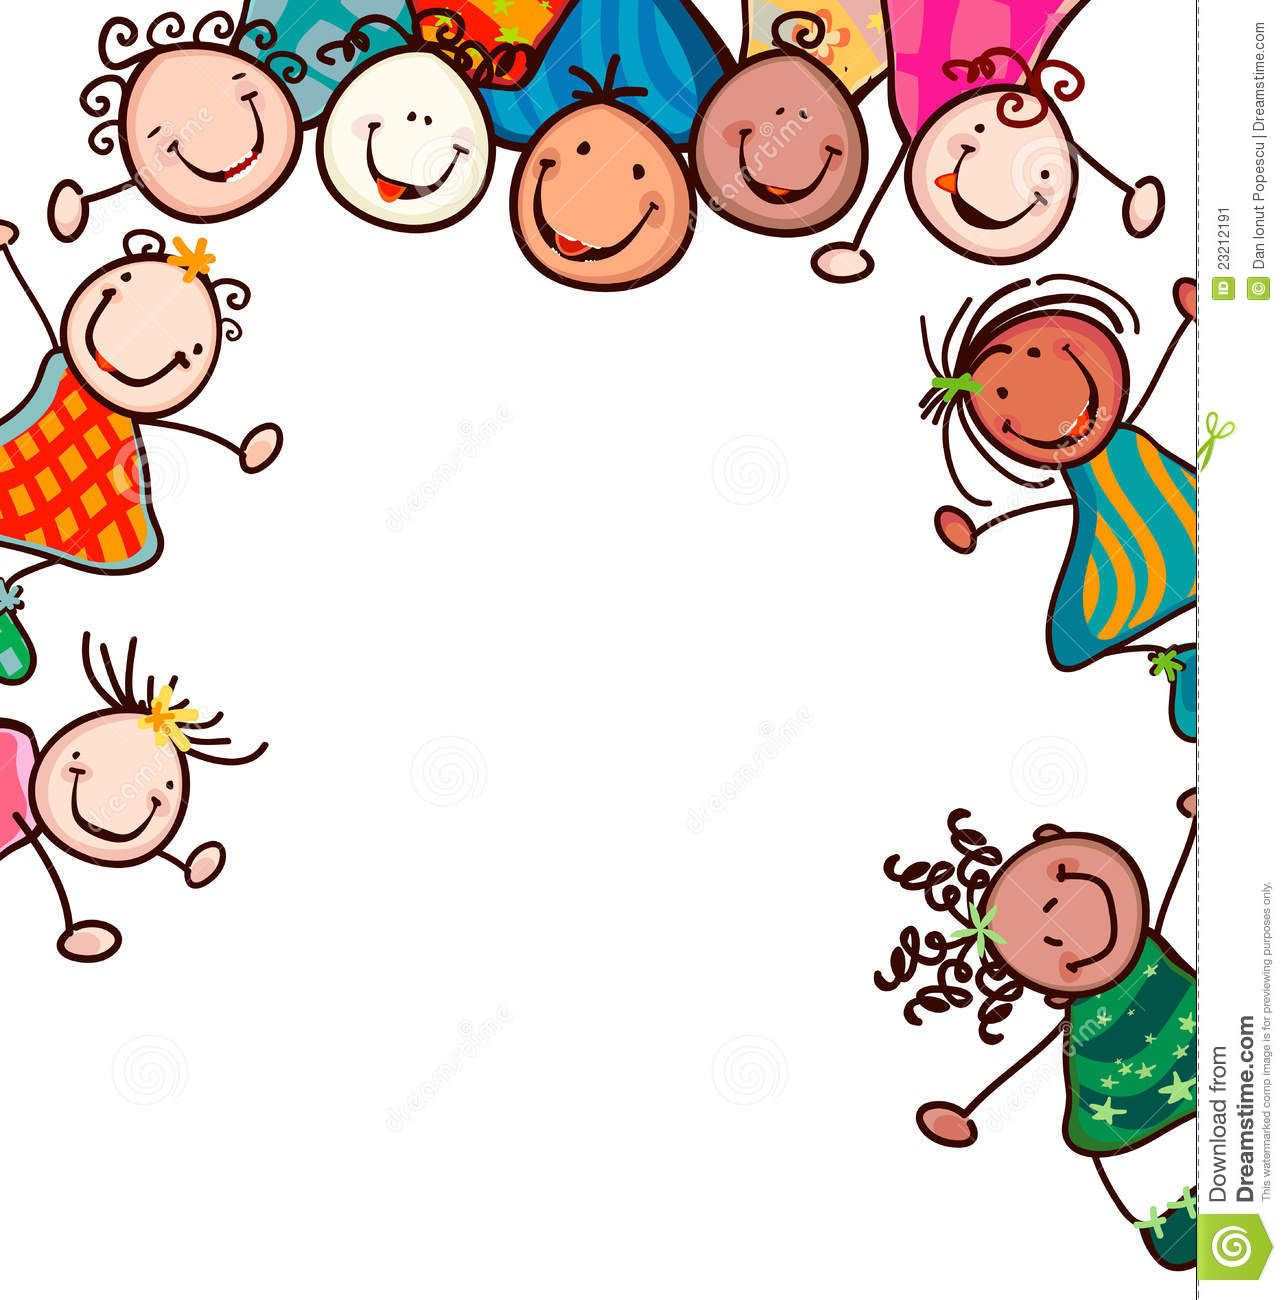 Clip Art Clip Art For Kids 1000 images about clip art on pinterest borders and frames kid kids reading